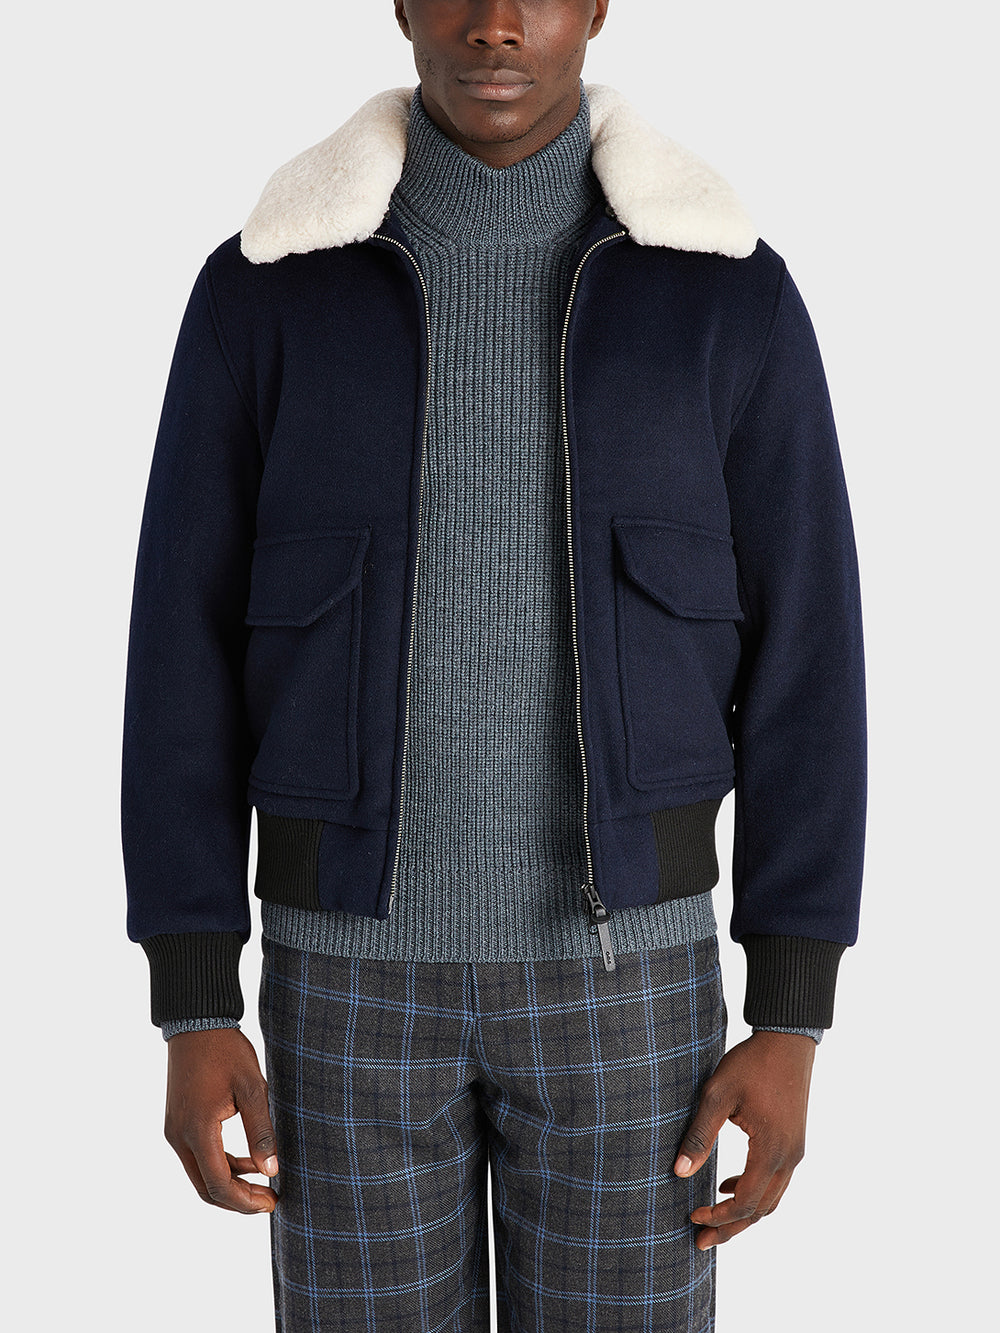 ONS Clothing Men's jacket in NAVY black friday deals